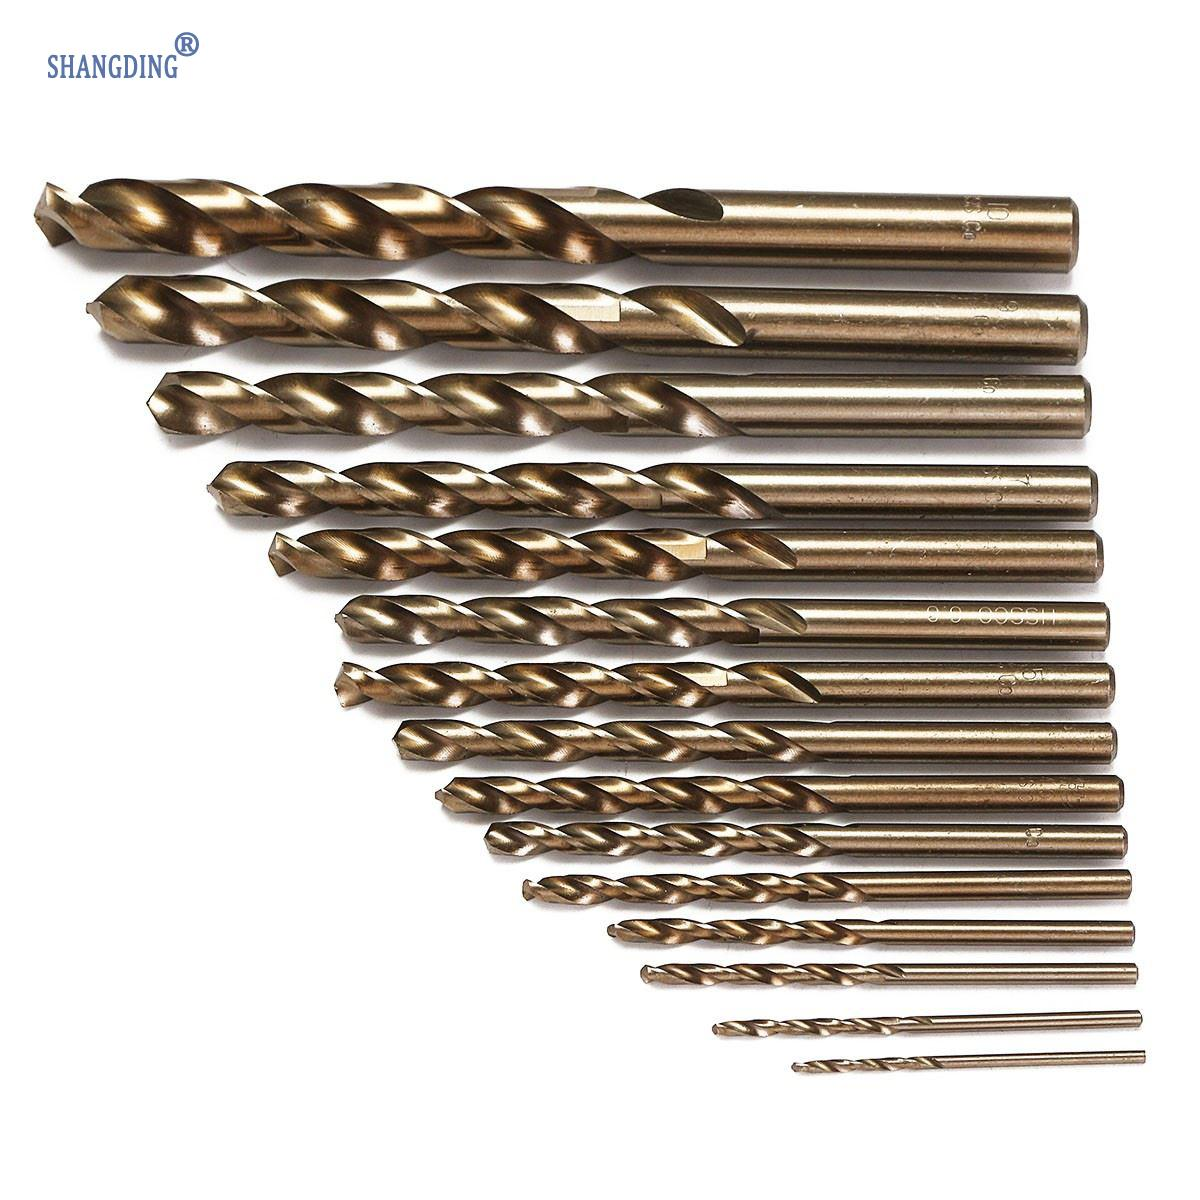 Newest 15pcs/set HSS-CO 1.5-10mm High Speed Steel M35 Cobalt Twist Drill Bit 40-133mm Length Wood Metal Drilling Top Quality 15pcs set hss co 1 5 10mm high speed steel m35 cobalt twist drill bit wood metal working drilling power tools set mayitr